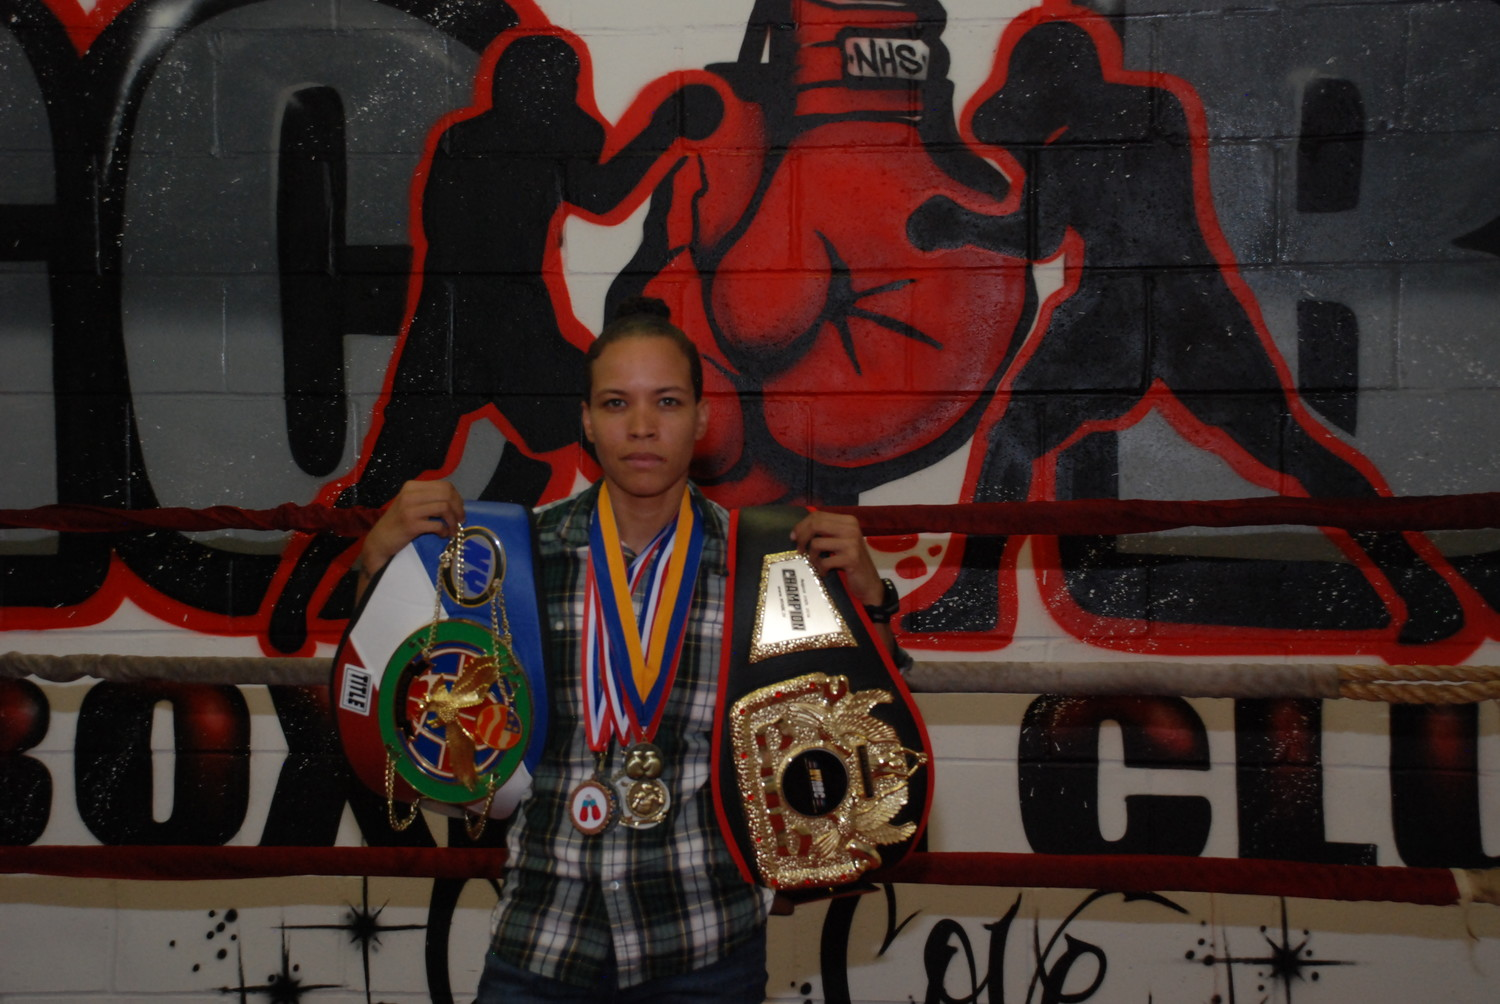 Emily Colon, 31, an alum of the Glen Cove Boxing Club, showed off some of the medals she's won, and the titles, in the form of belts, that she's currently defending. Colon is currently a member of the Puerto Rican Olympic team.